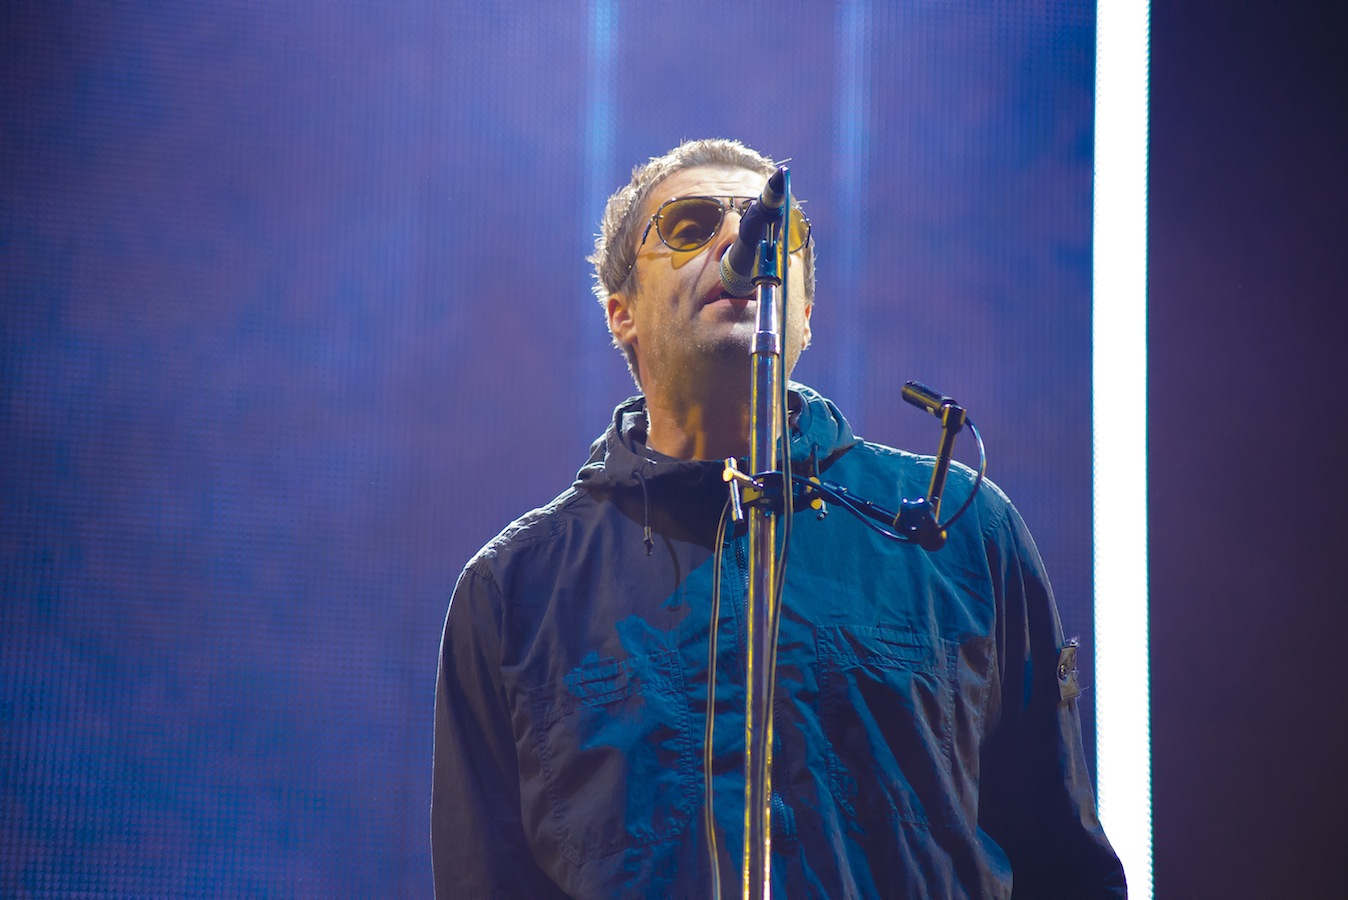 Liam Gallagher, Emirates Old Trafford (Credit: Paul Langley)